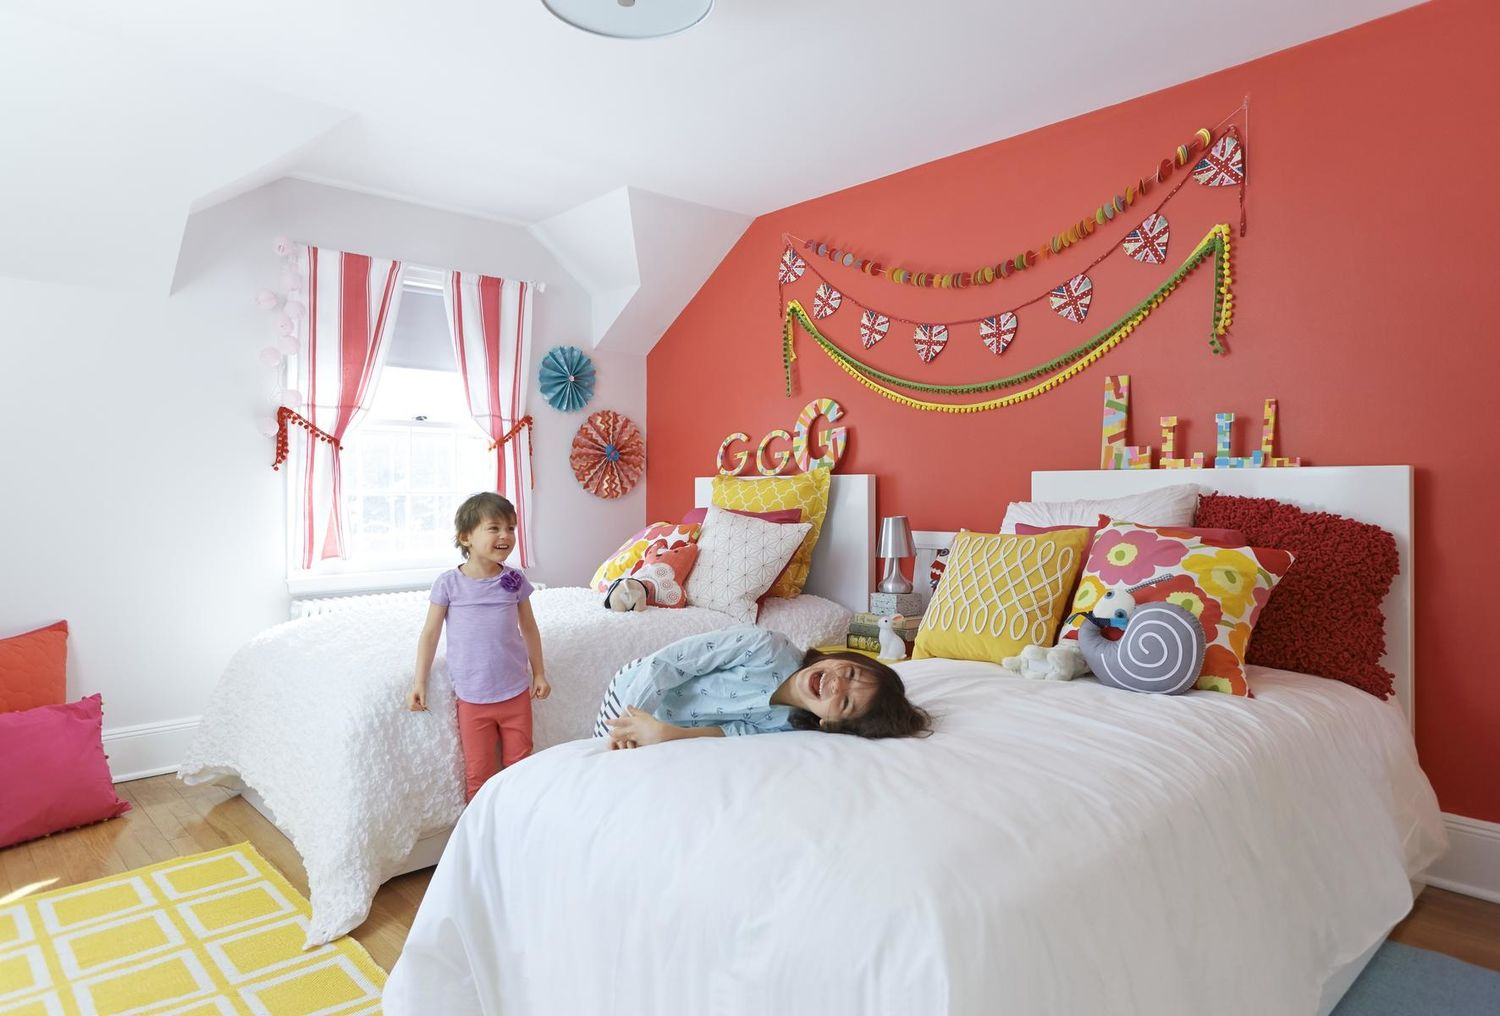 Inexpensive and Colorful Kids' Bedroom Ideas